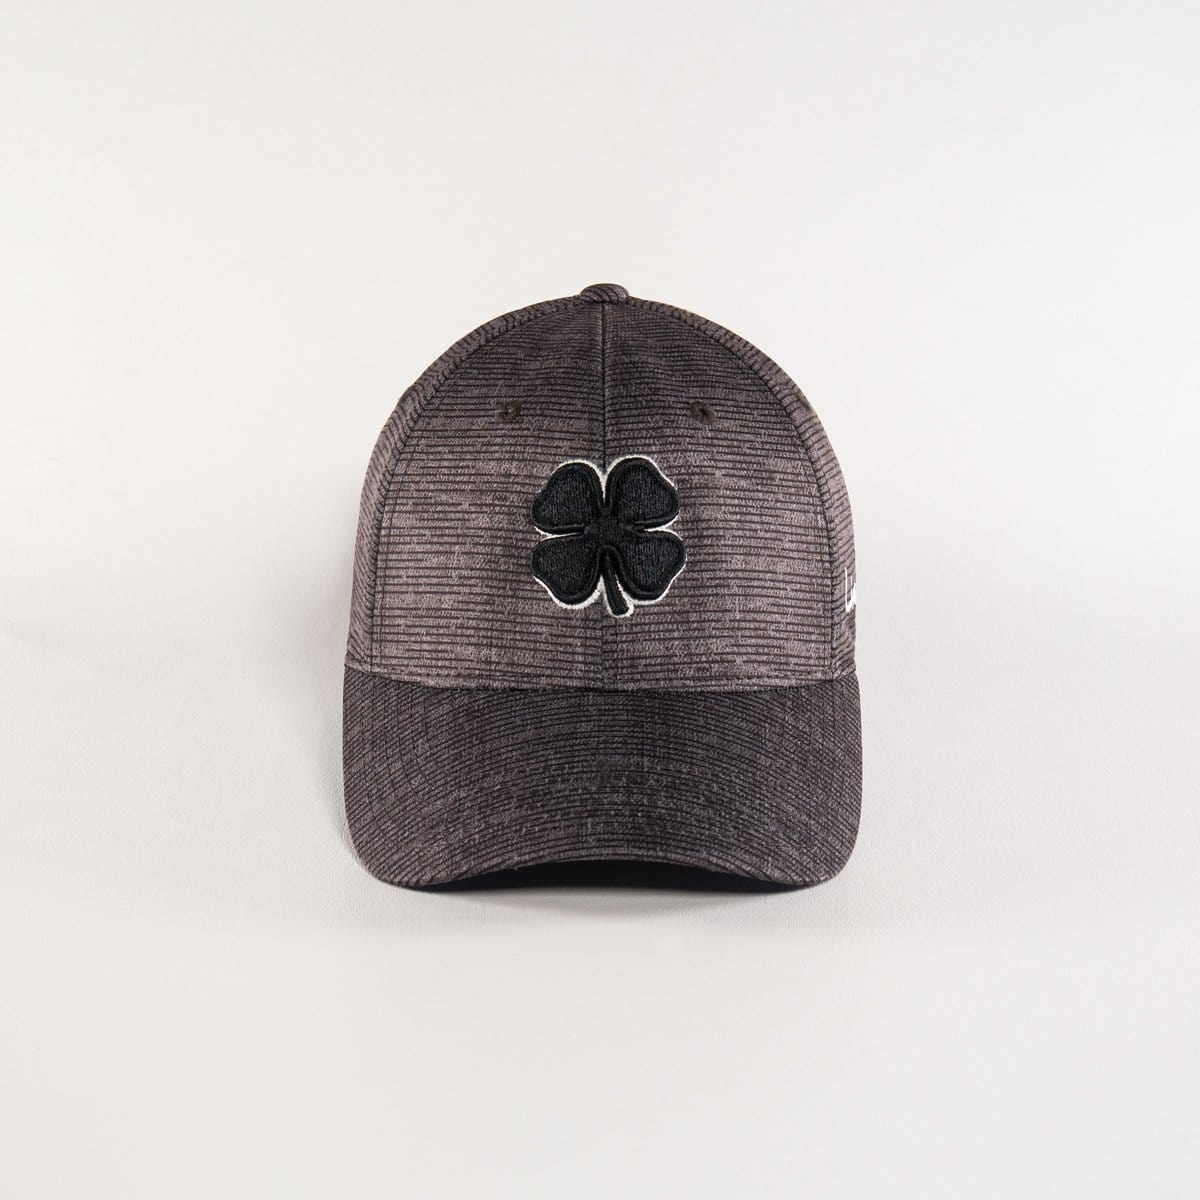 Black Clover Baseball Caps Crazy Luck 2-  Snapback equestrian team apparel online tack store mobile tack store custom farm apparel custom show stable clothing equestrian lifestyle horse show clothing riding clothes horses equestrian tack store